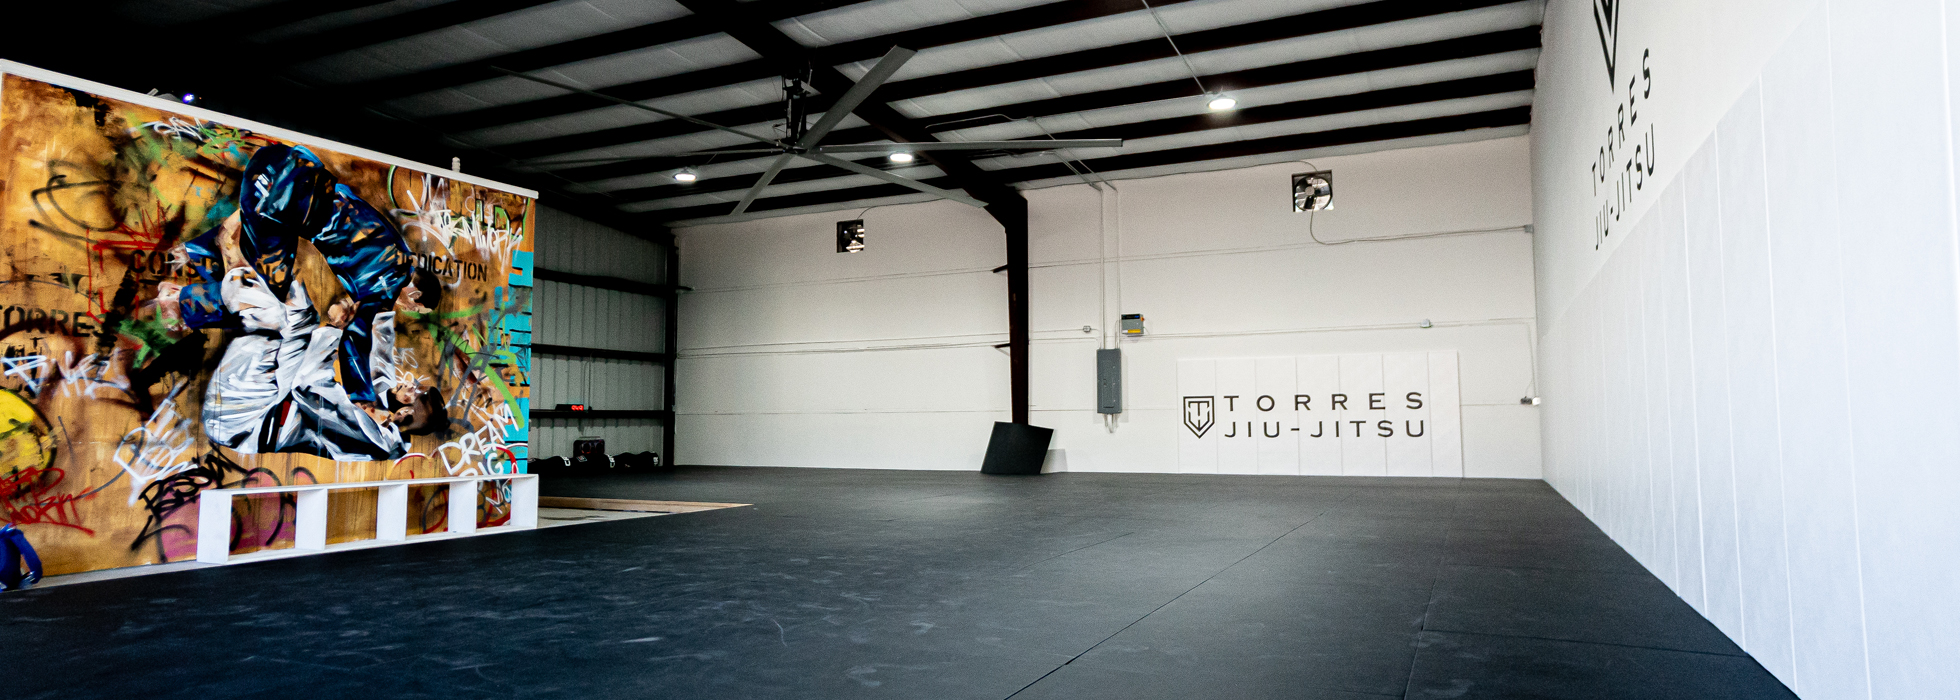 Why Torres Jiu Jitsu Is Ranked One Of The Best Gyms in Spring TX, Why Torres Jiu Jitsu Is Ranked One Of The Best Gyms near The Woodlands TX, Why Torres Jiu Jitsu Is Ranked One Of The Best Gyms near Klein, Why Torres Jiu Jitsu Is Ranked One Of The Best Gyms near Tomball TX